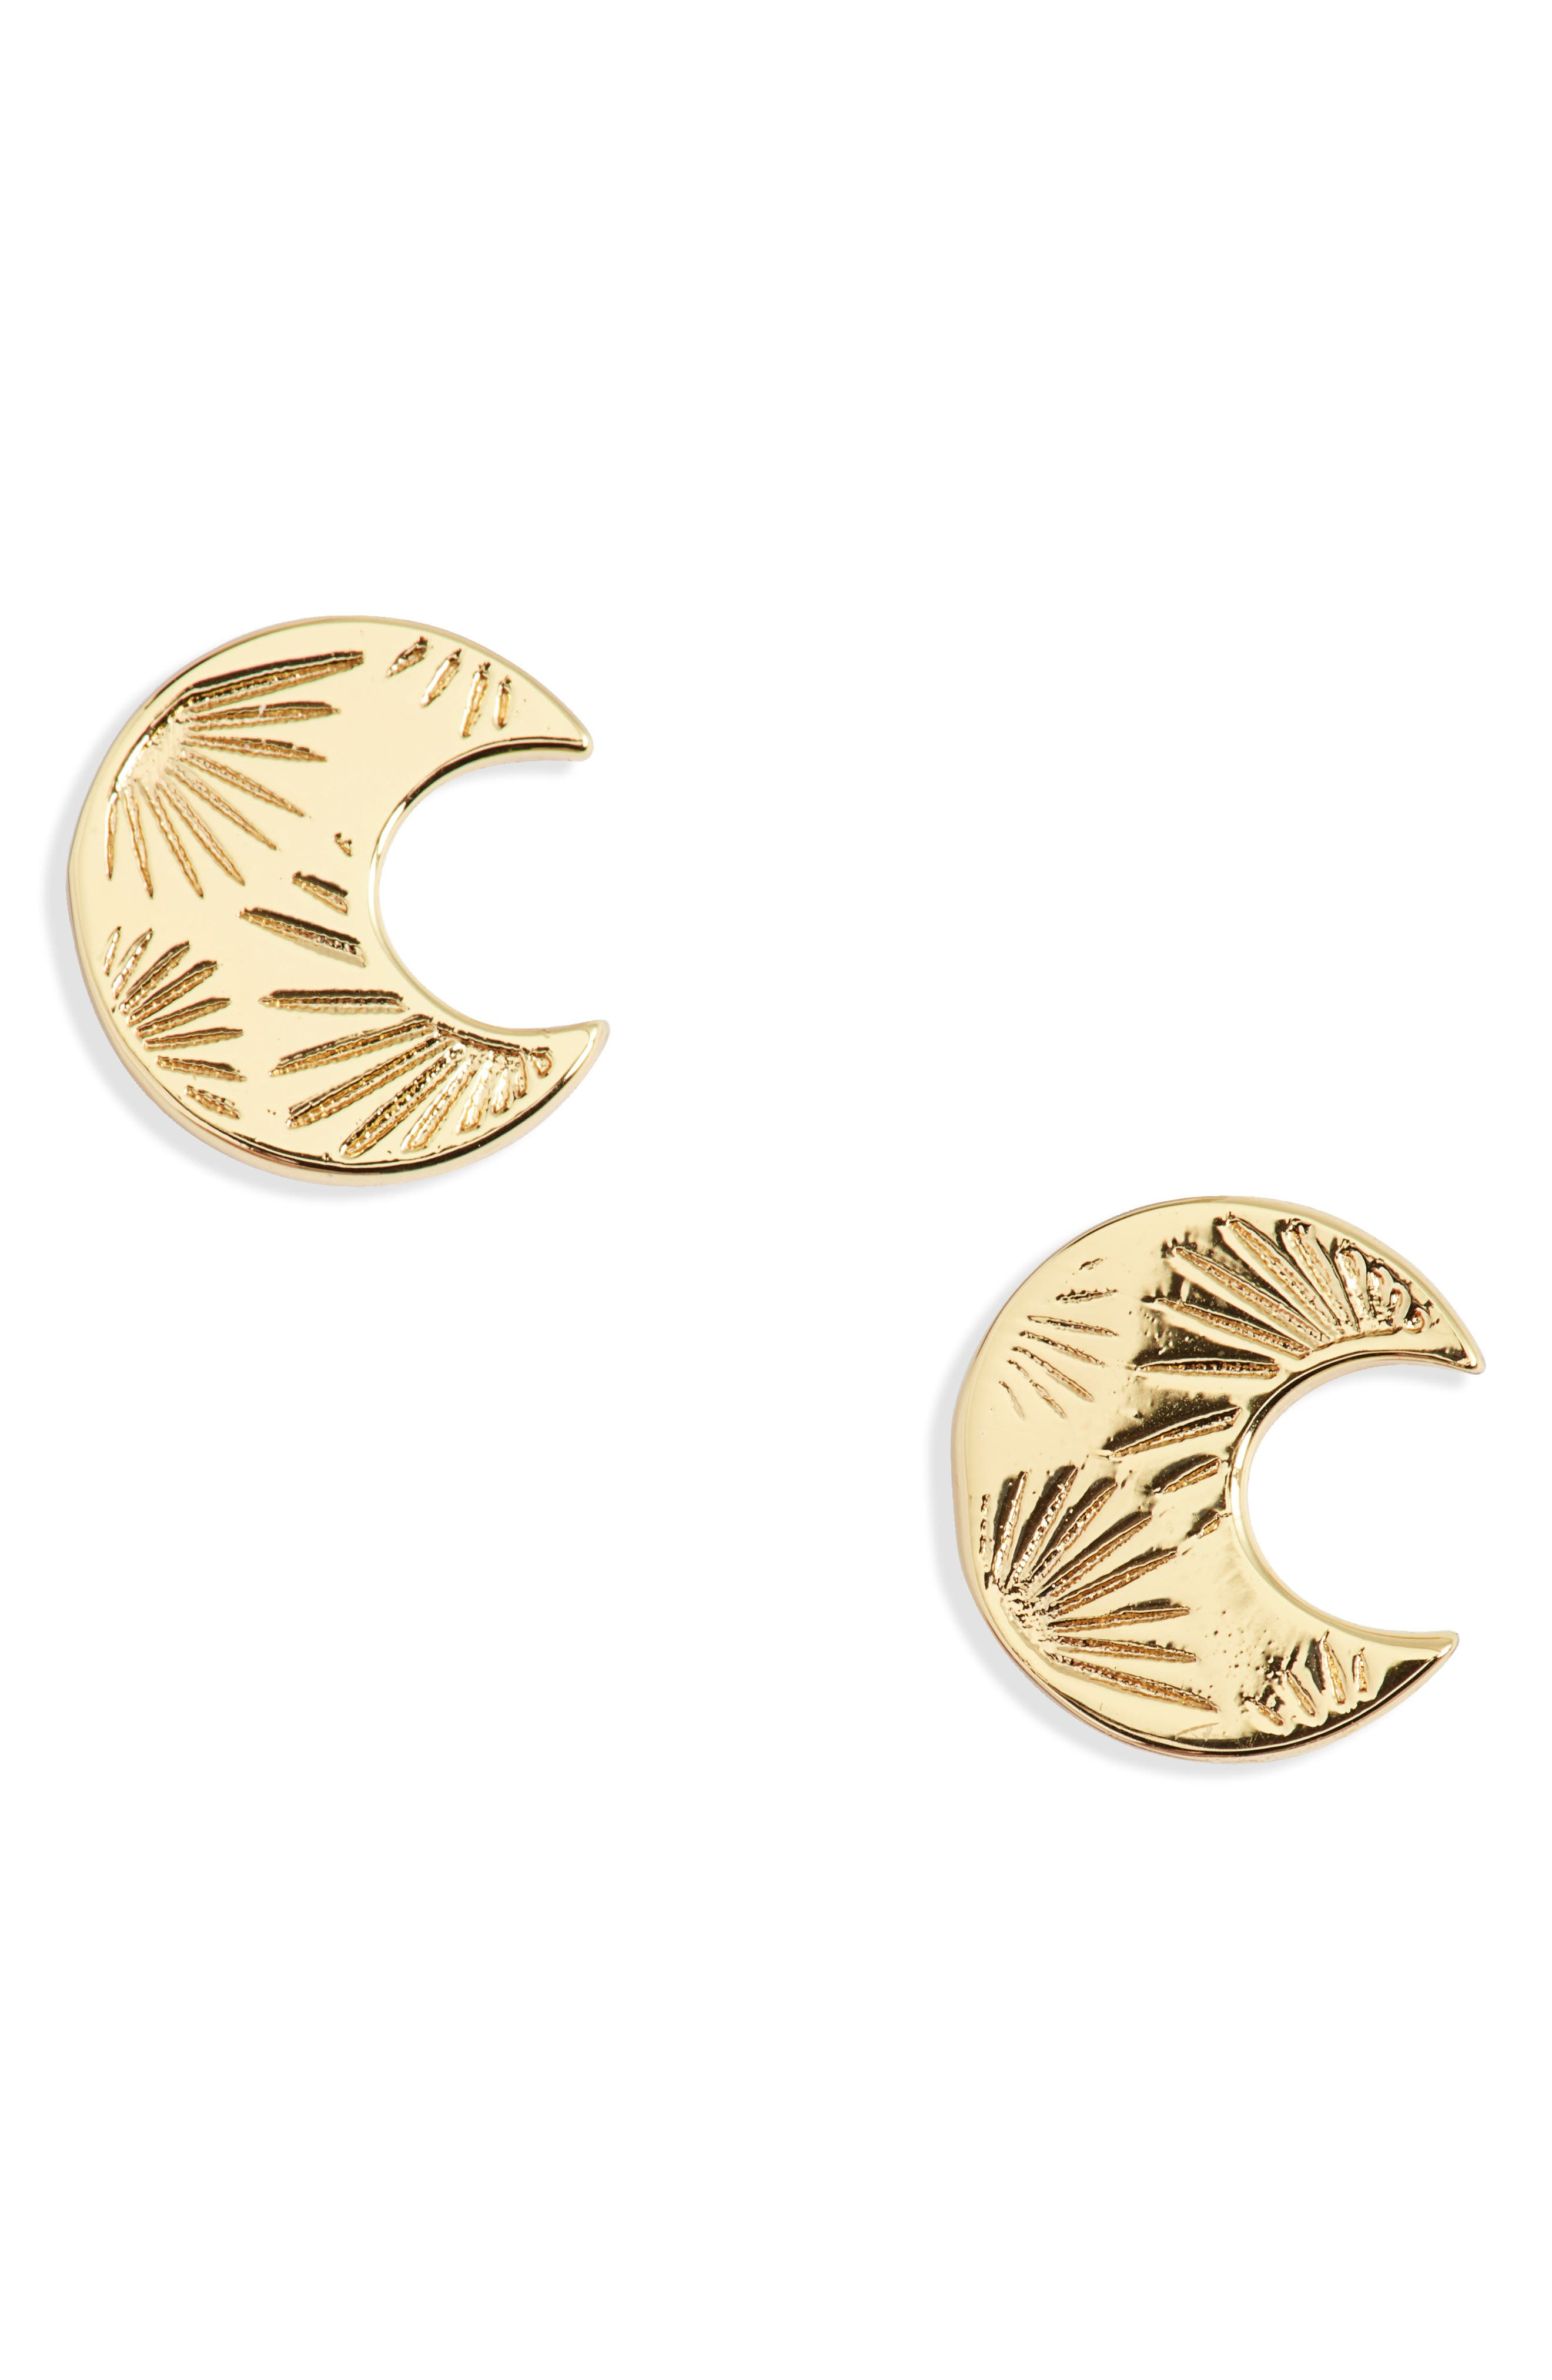 Image of Gorjana Azul Crescent Stud Earrings